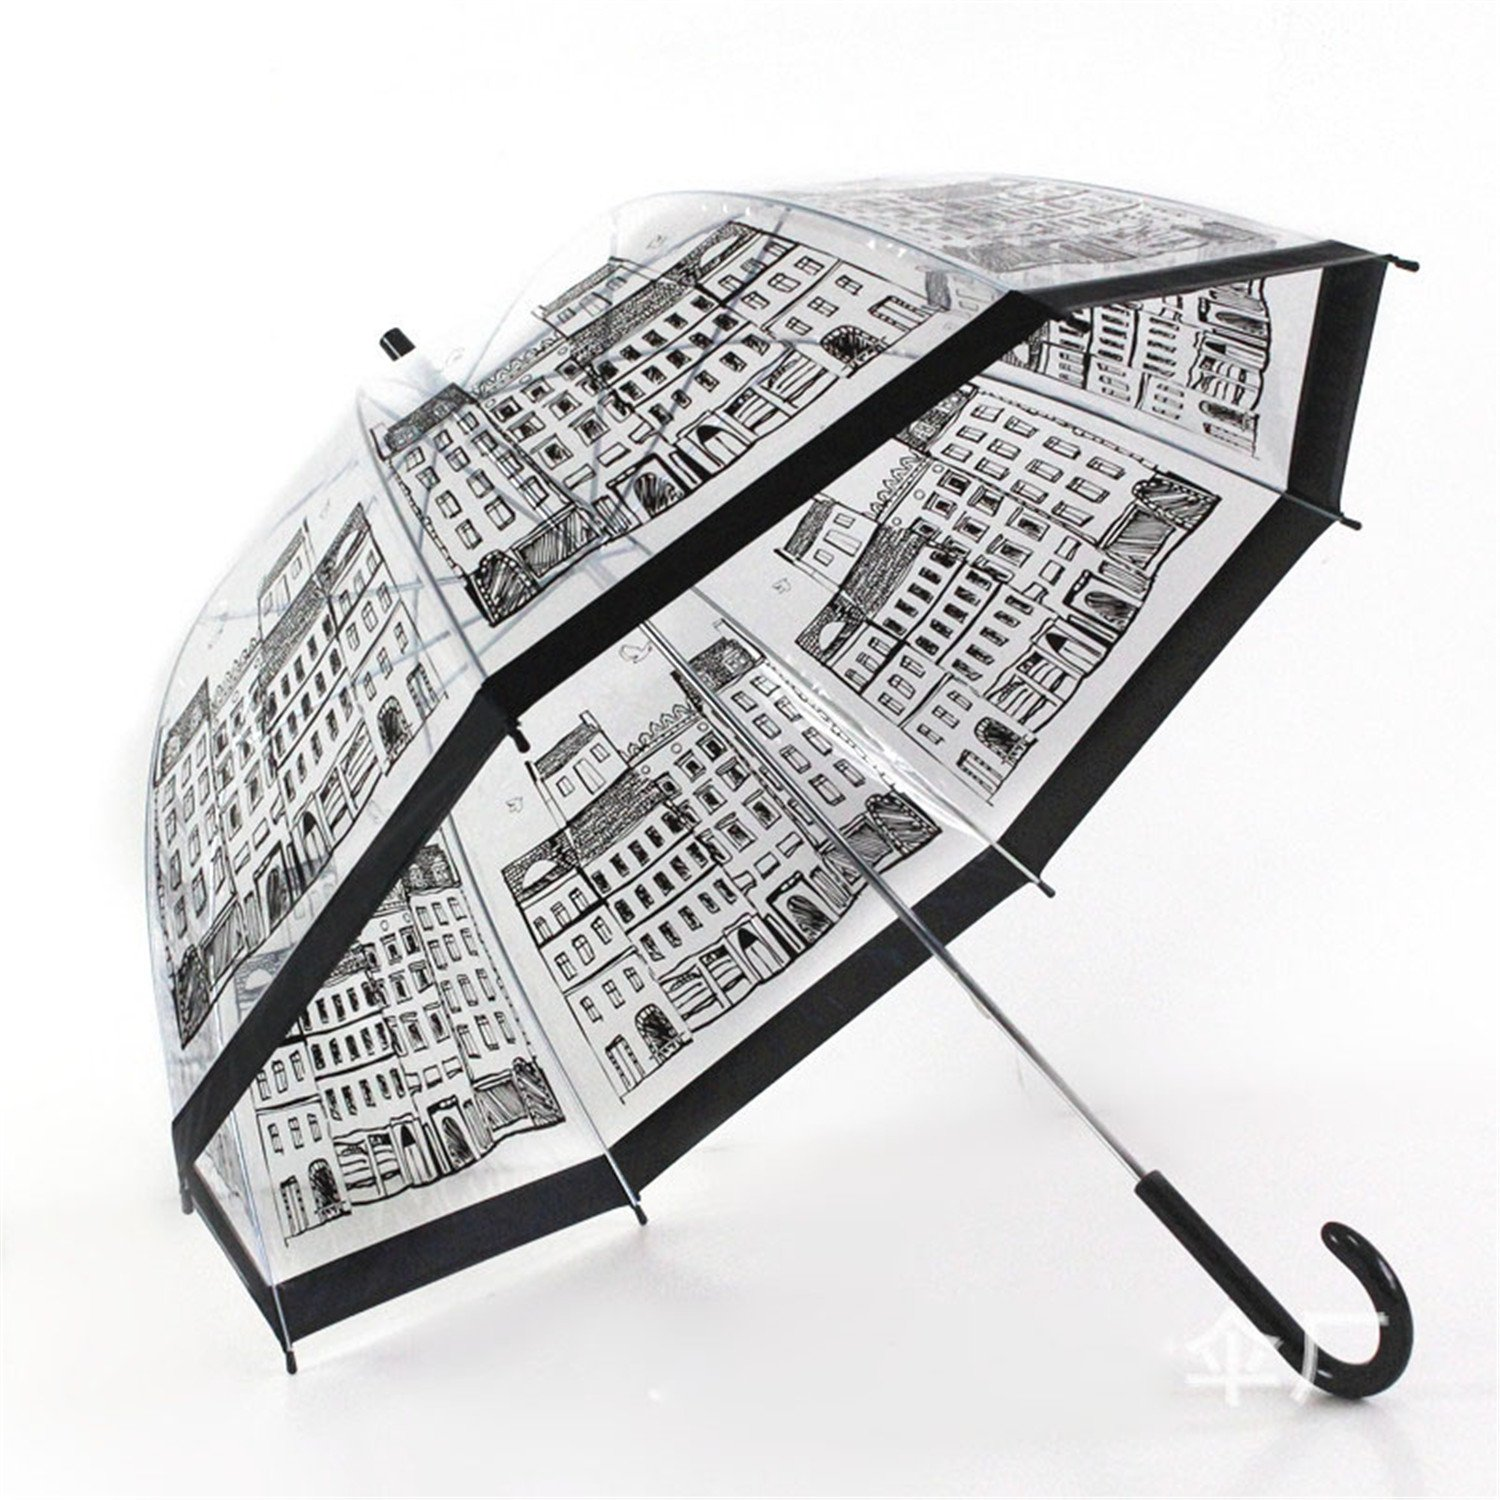 Amazon.com : Reinhar Umbrella Parasol Beach Vault Parapluie Umbrella Rain Women Paraguas Sombrillas Para el sol Sombrilla Photo Color : Sports & Outdoors